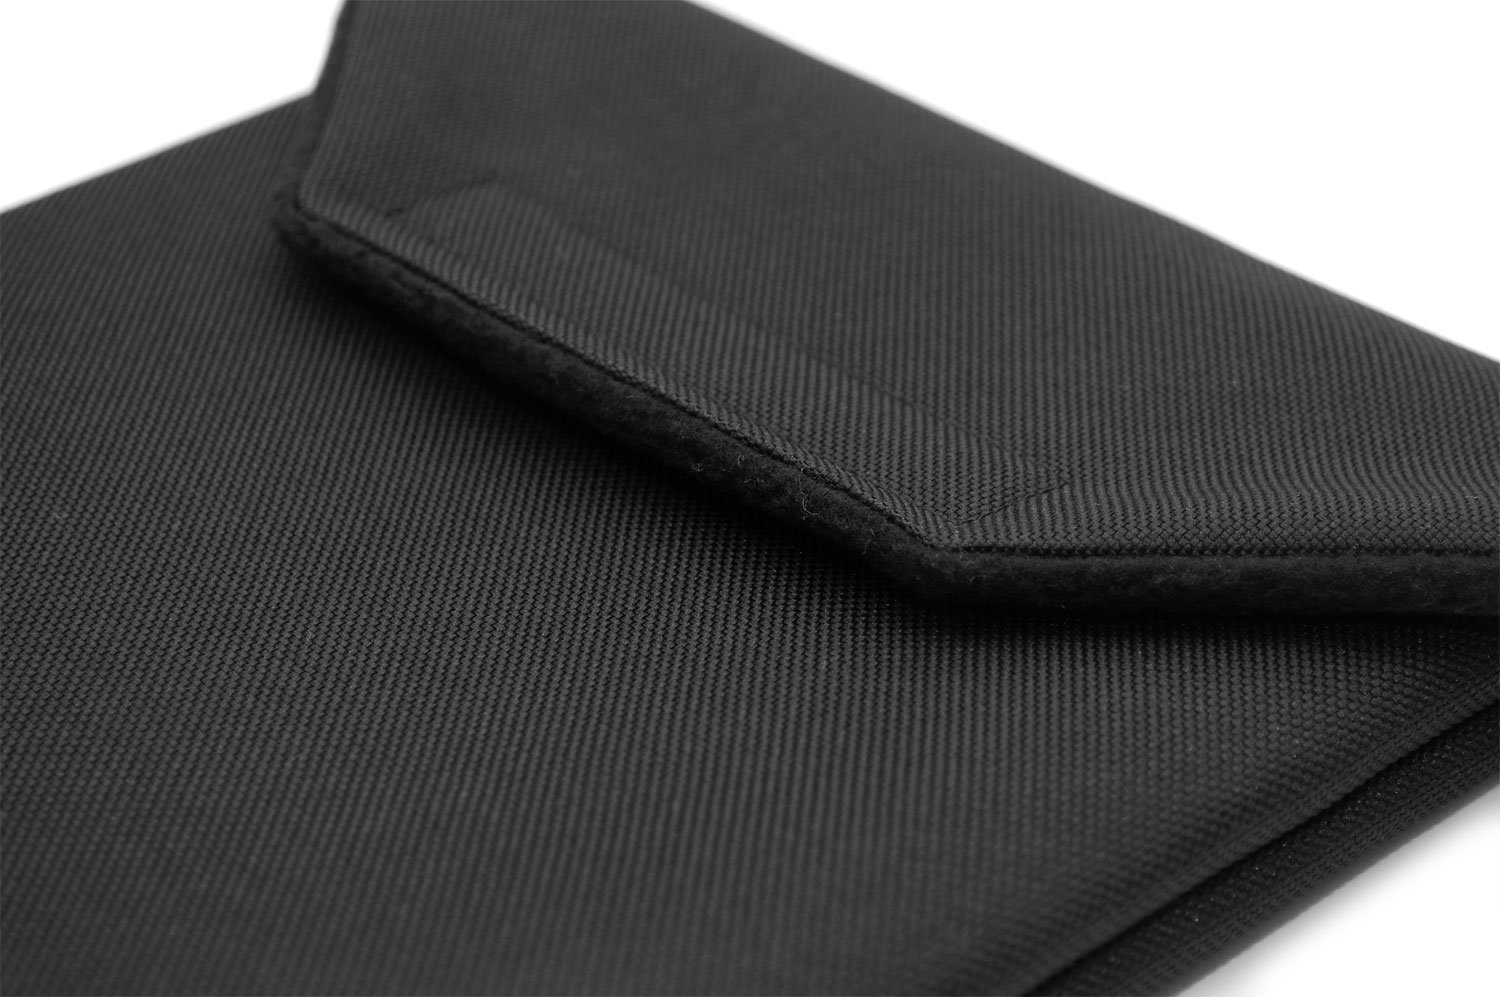 Black Canvas CushCase Sleeve Case for Samsung Galaxy Tab S4 10.5 with Book Cover Keyboard Attached